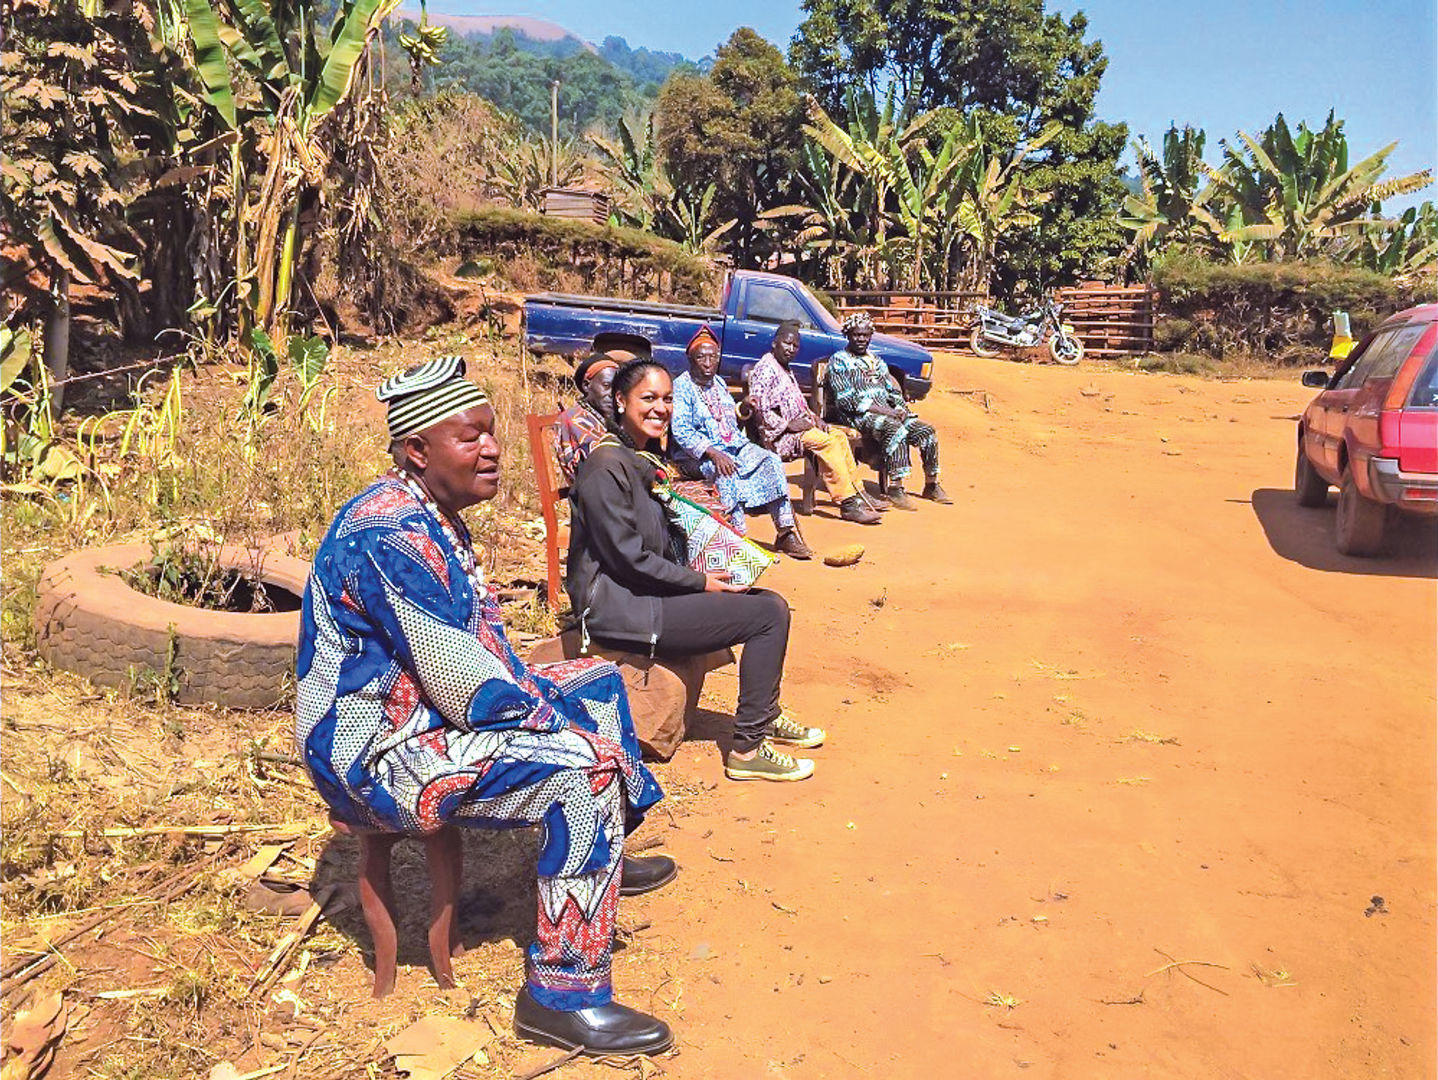 Ghangela Jones sits with local people during her time in Cameroon.